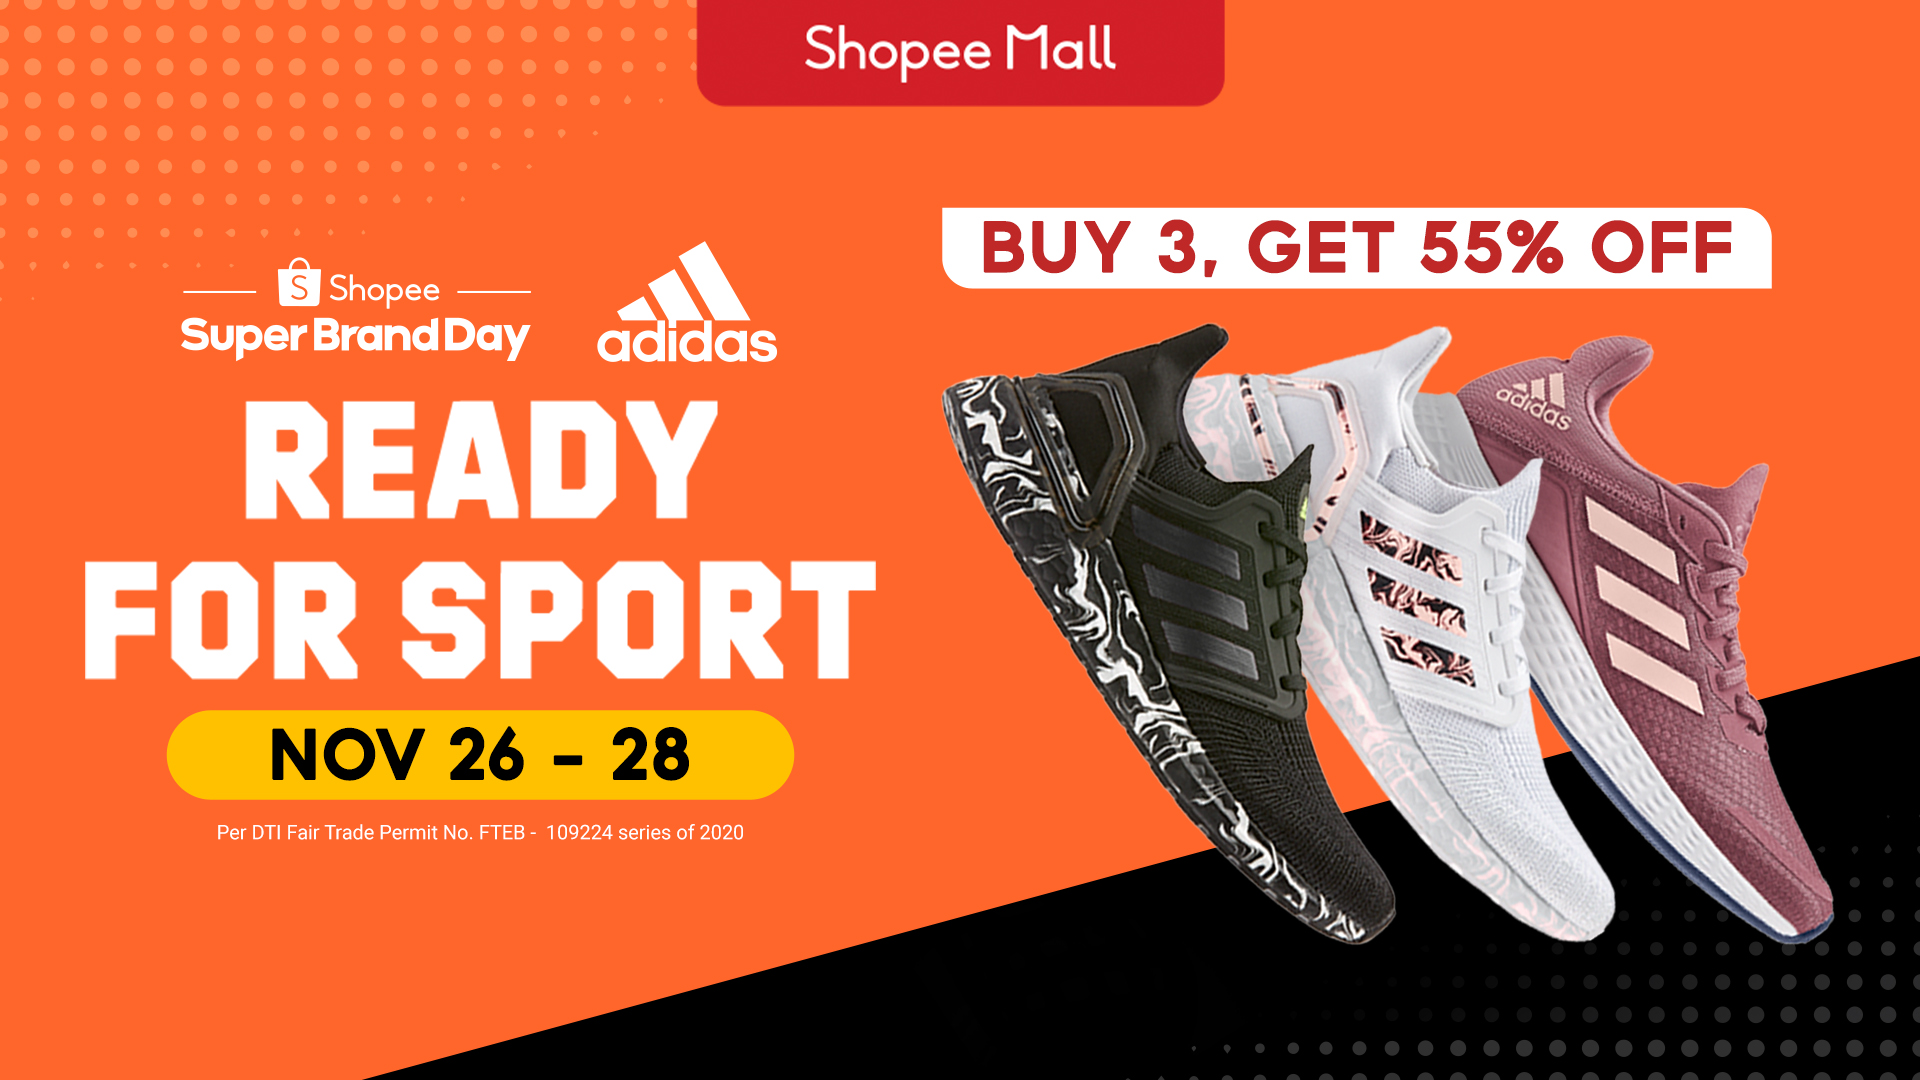 adidas debuts its Regional Shopee Super Brand Day in the Philippines